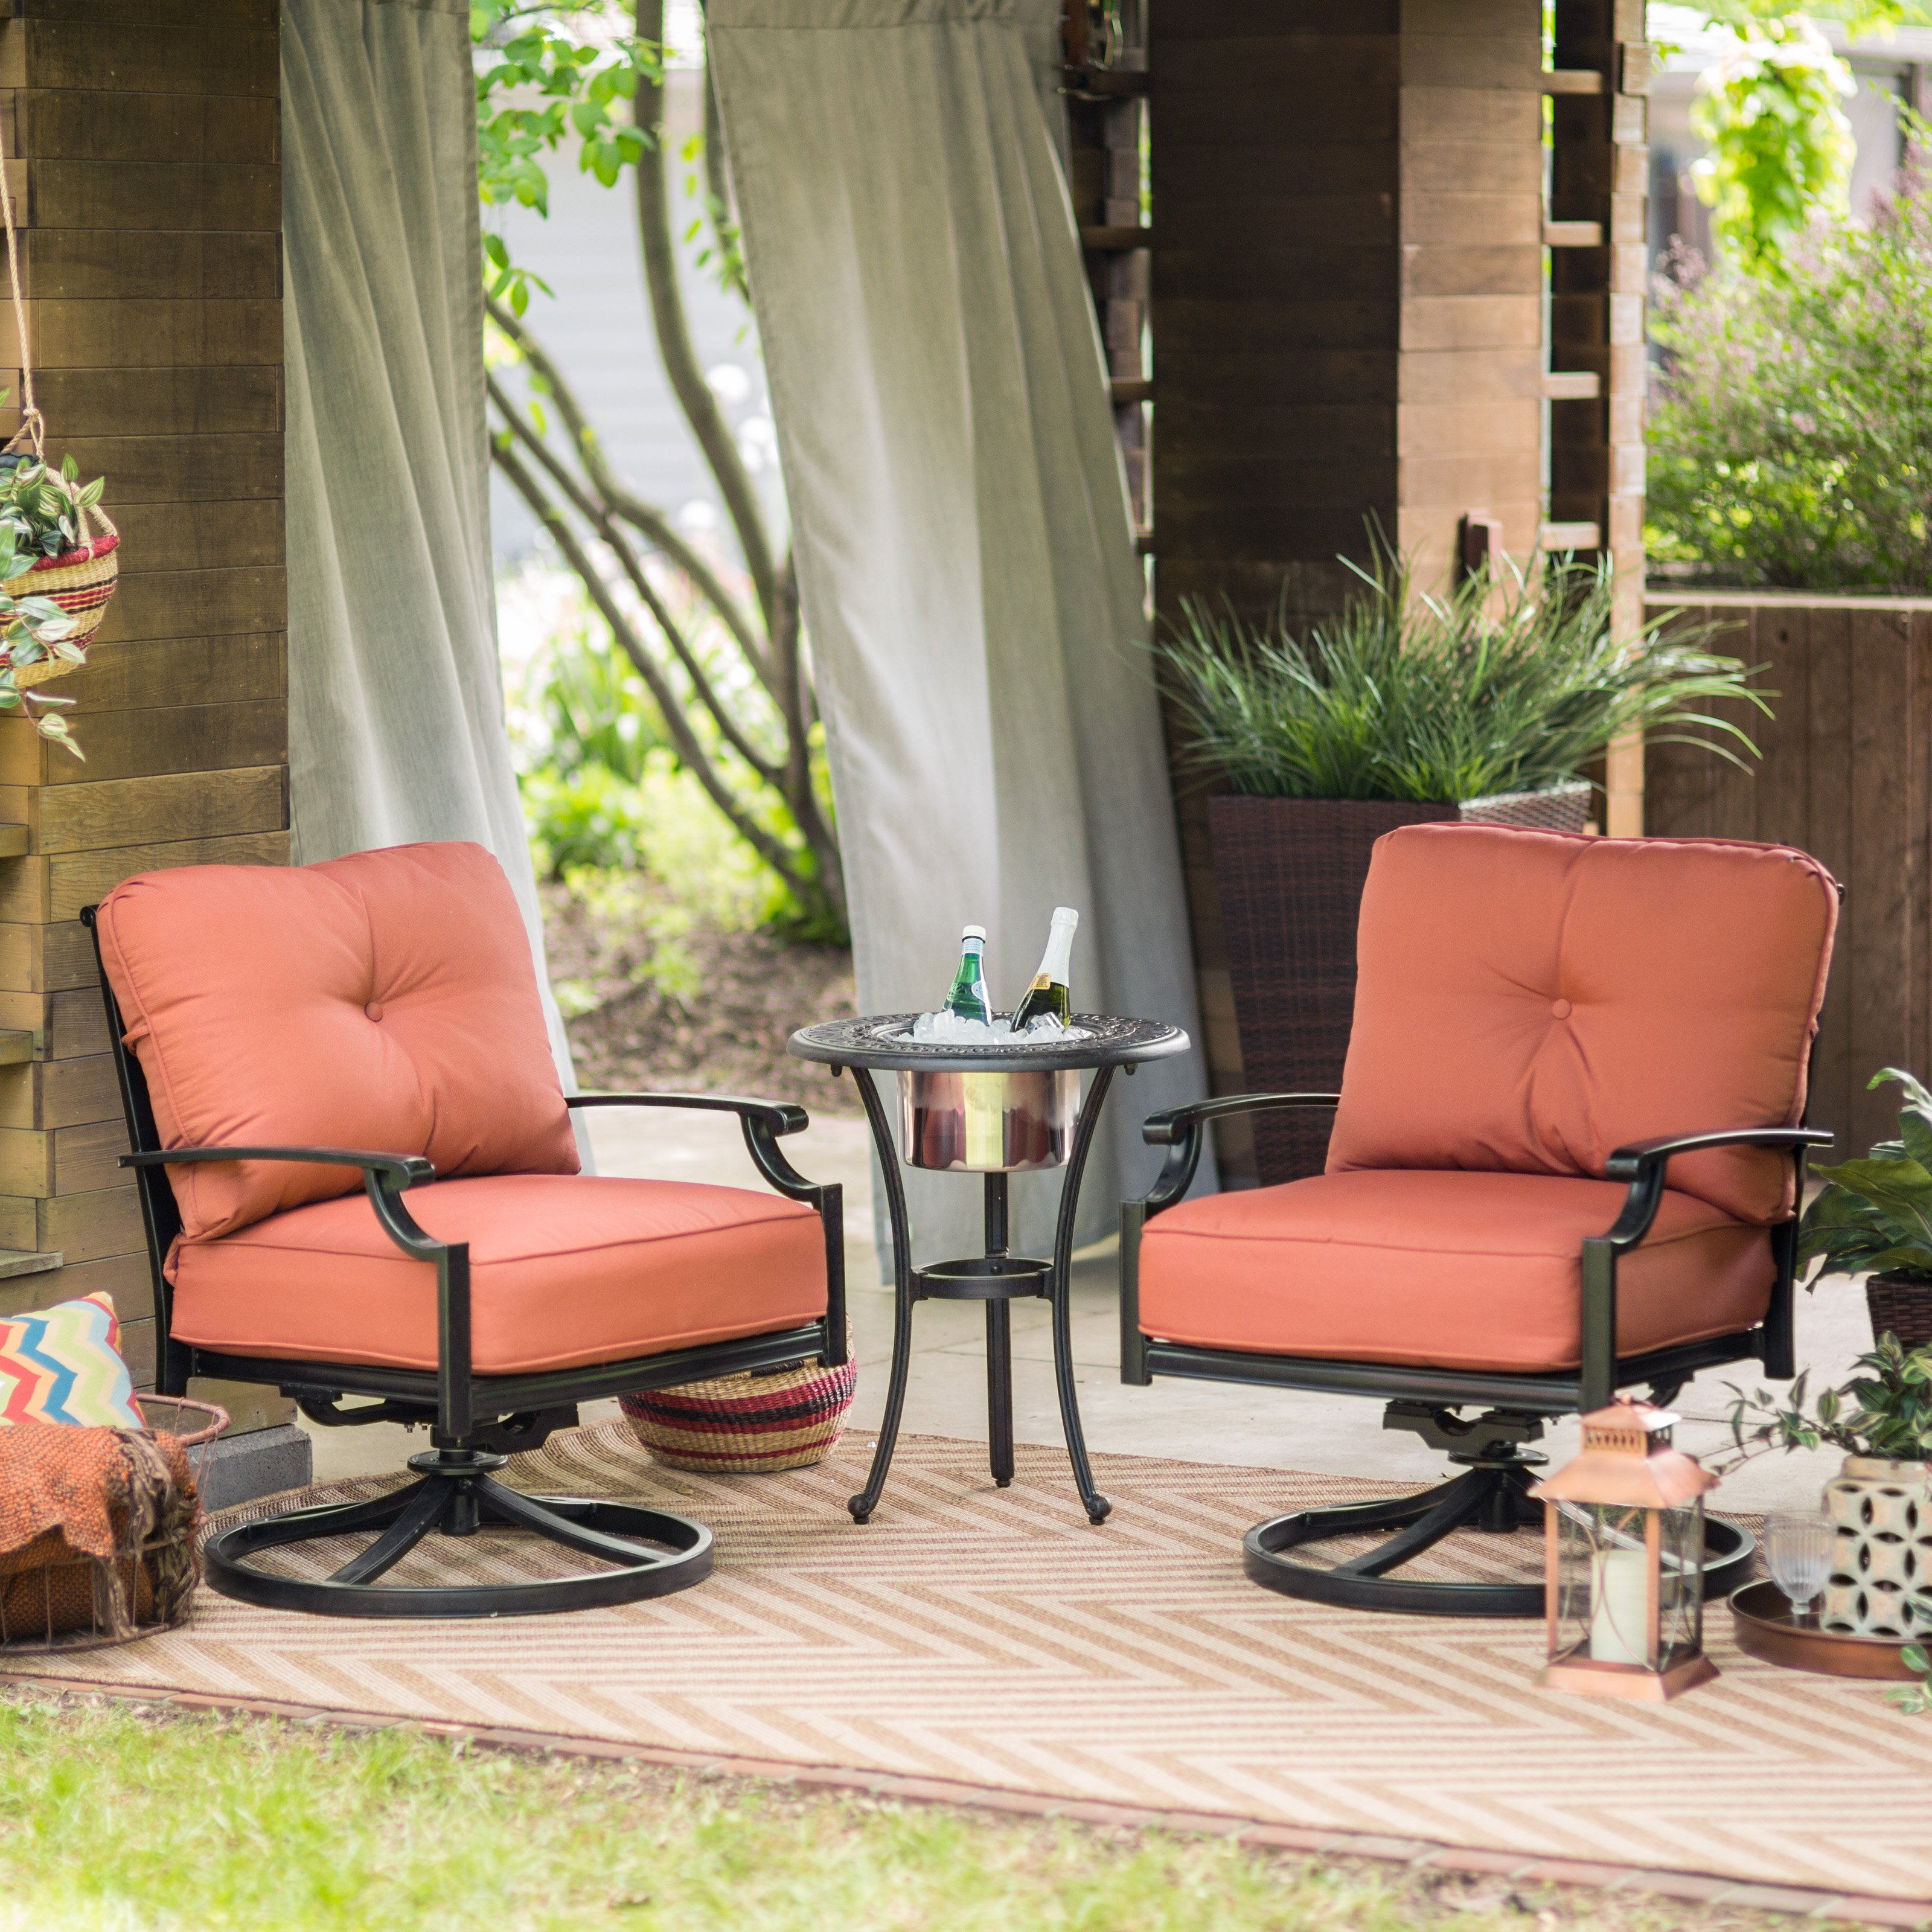 belham living san miguel cast aluminum swivel rocker club chairs with beverage cooler side table master outdoor kids reading nook hall console accent coffee clearance adjustable